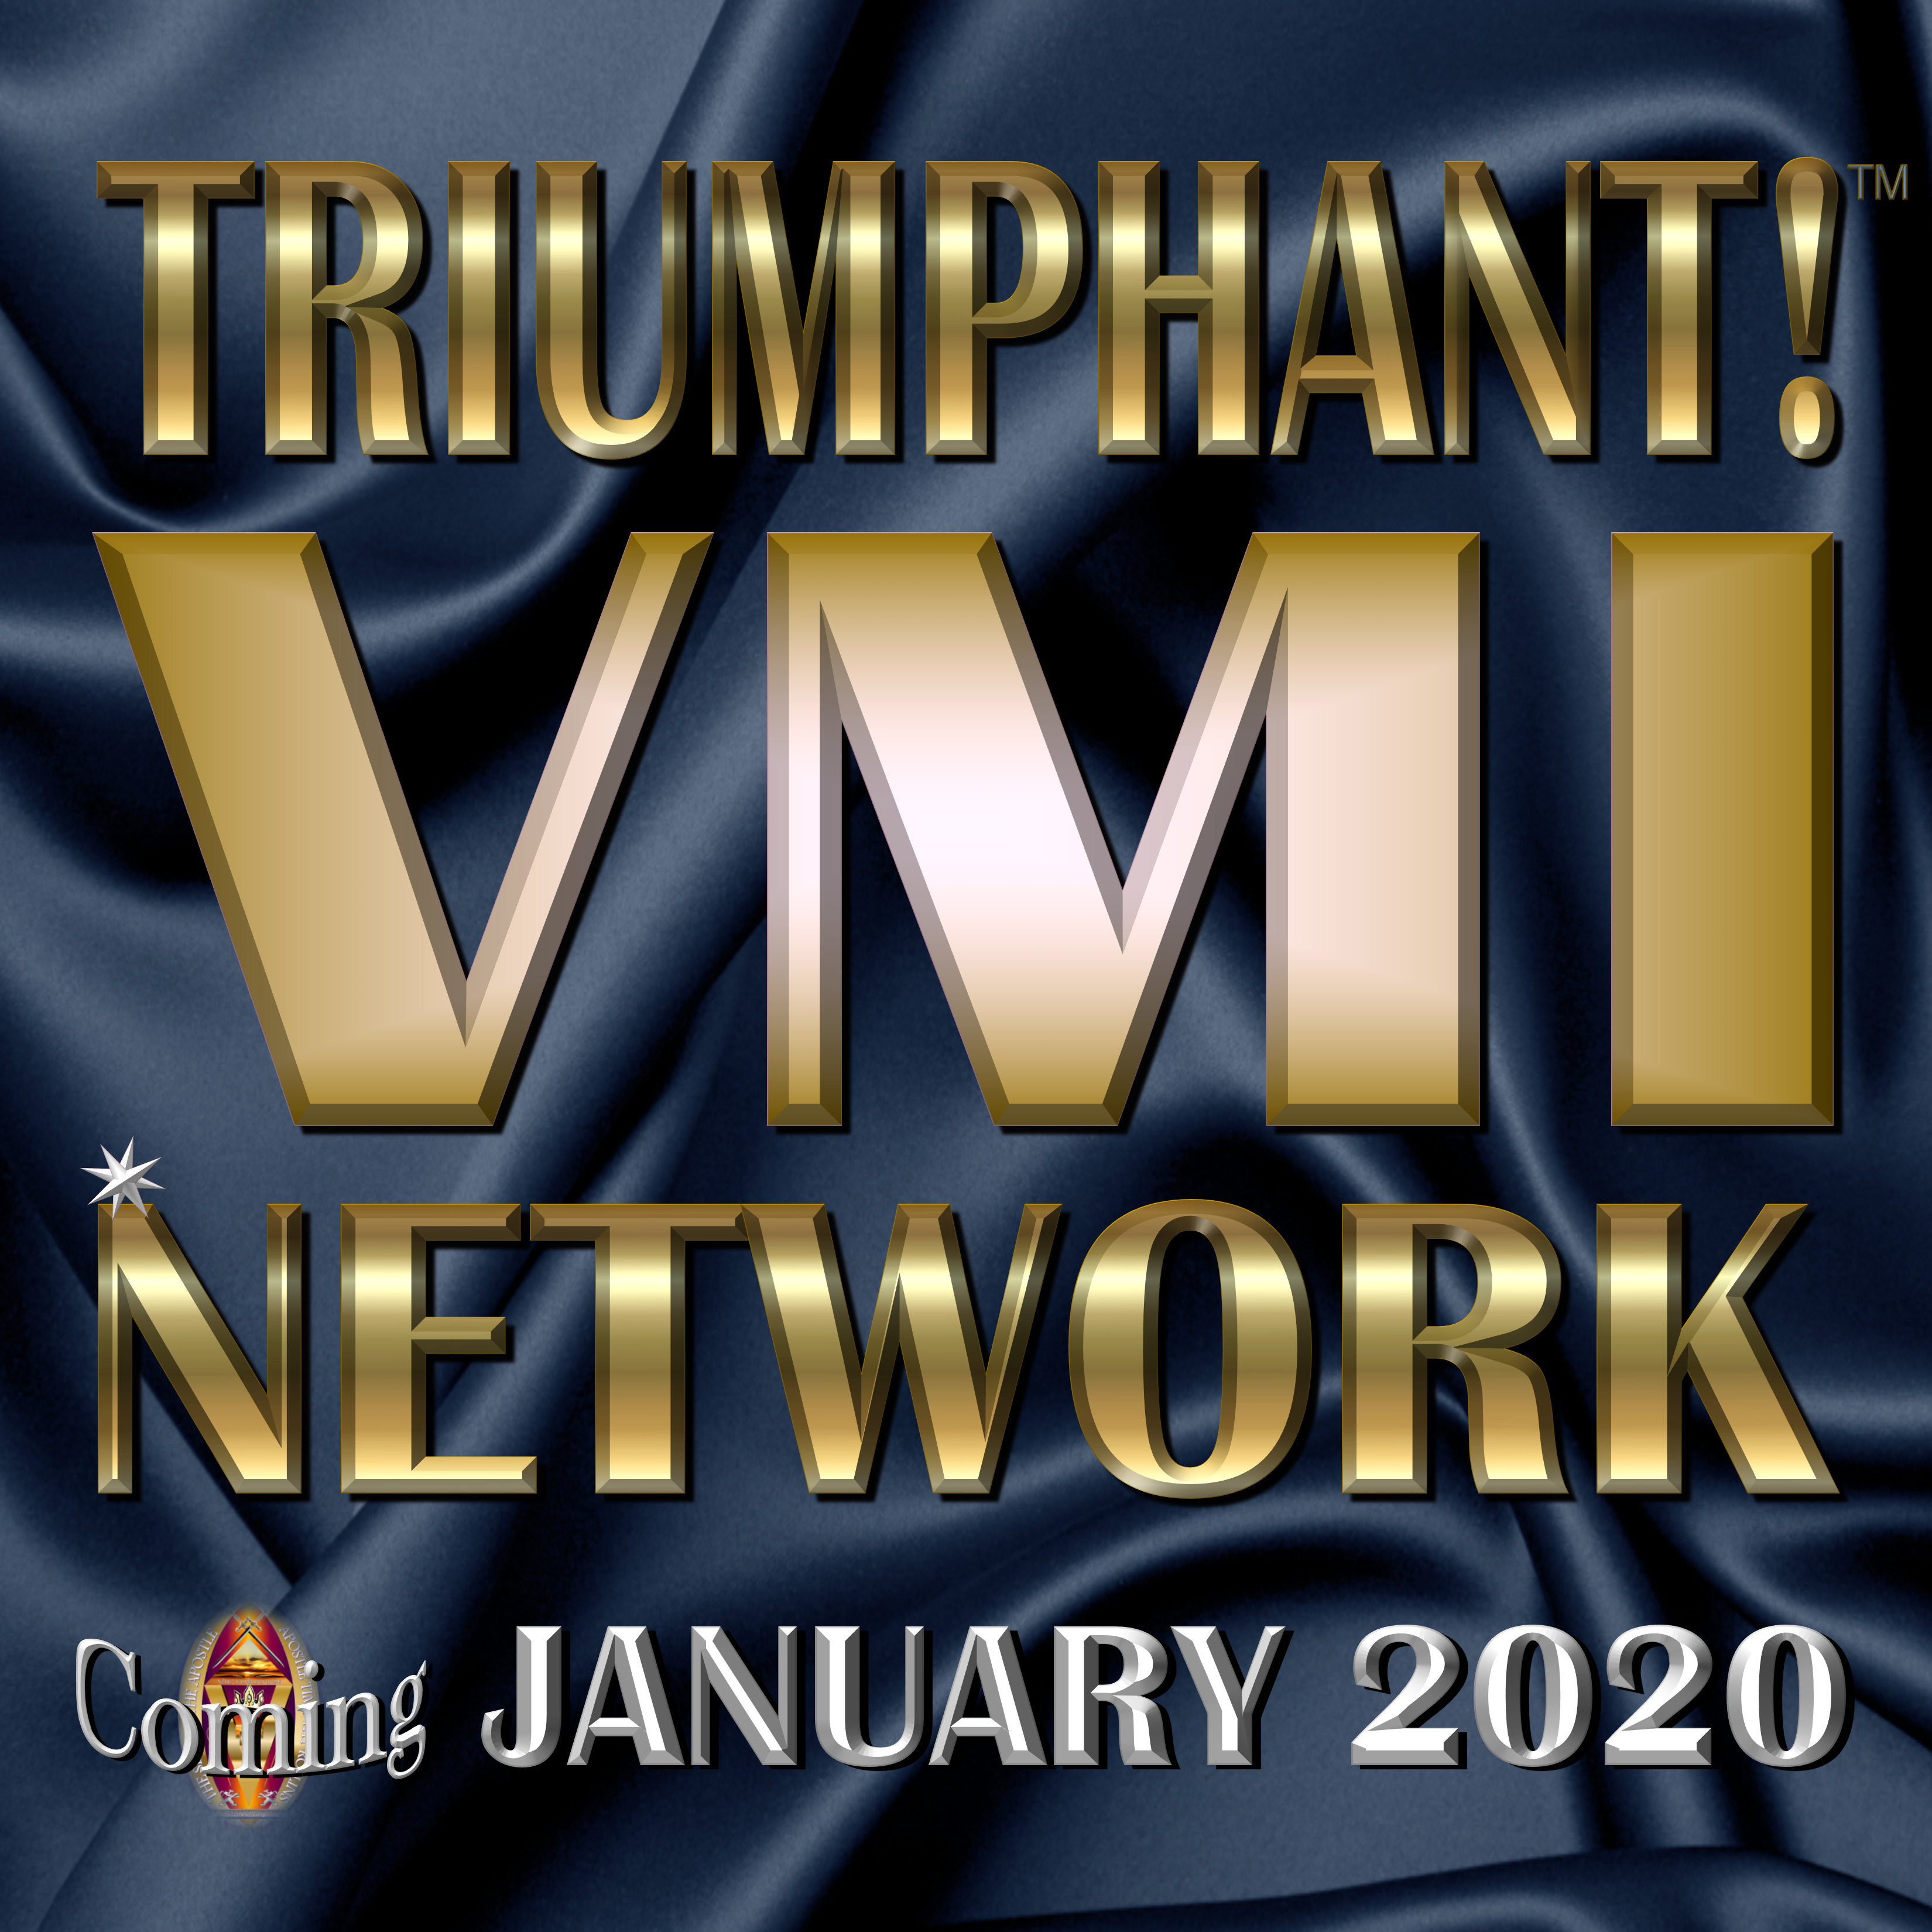 Games With Gold January 2020.Triumphant Triumphant Vmi Network January 2020 Banner